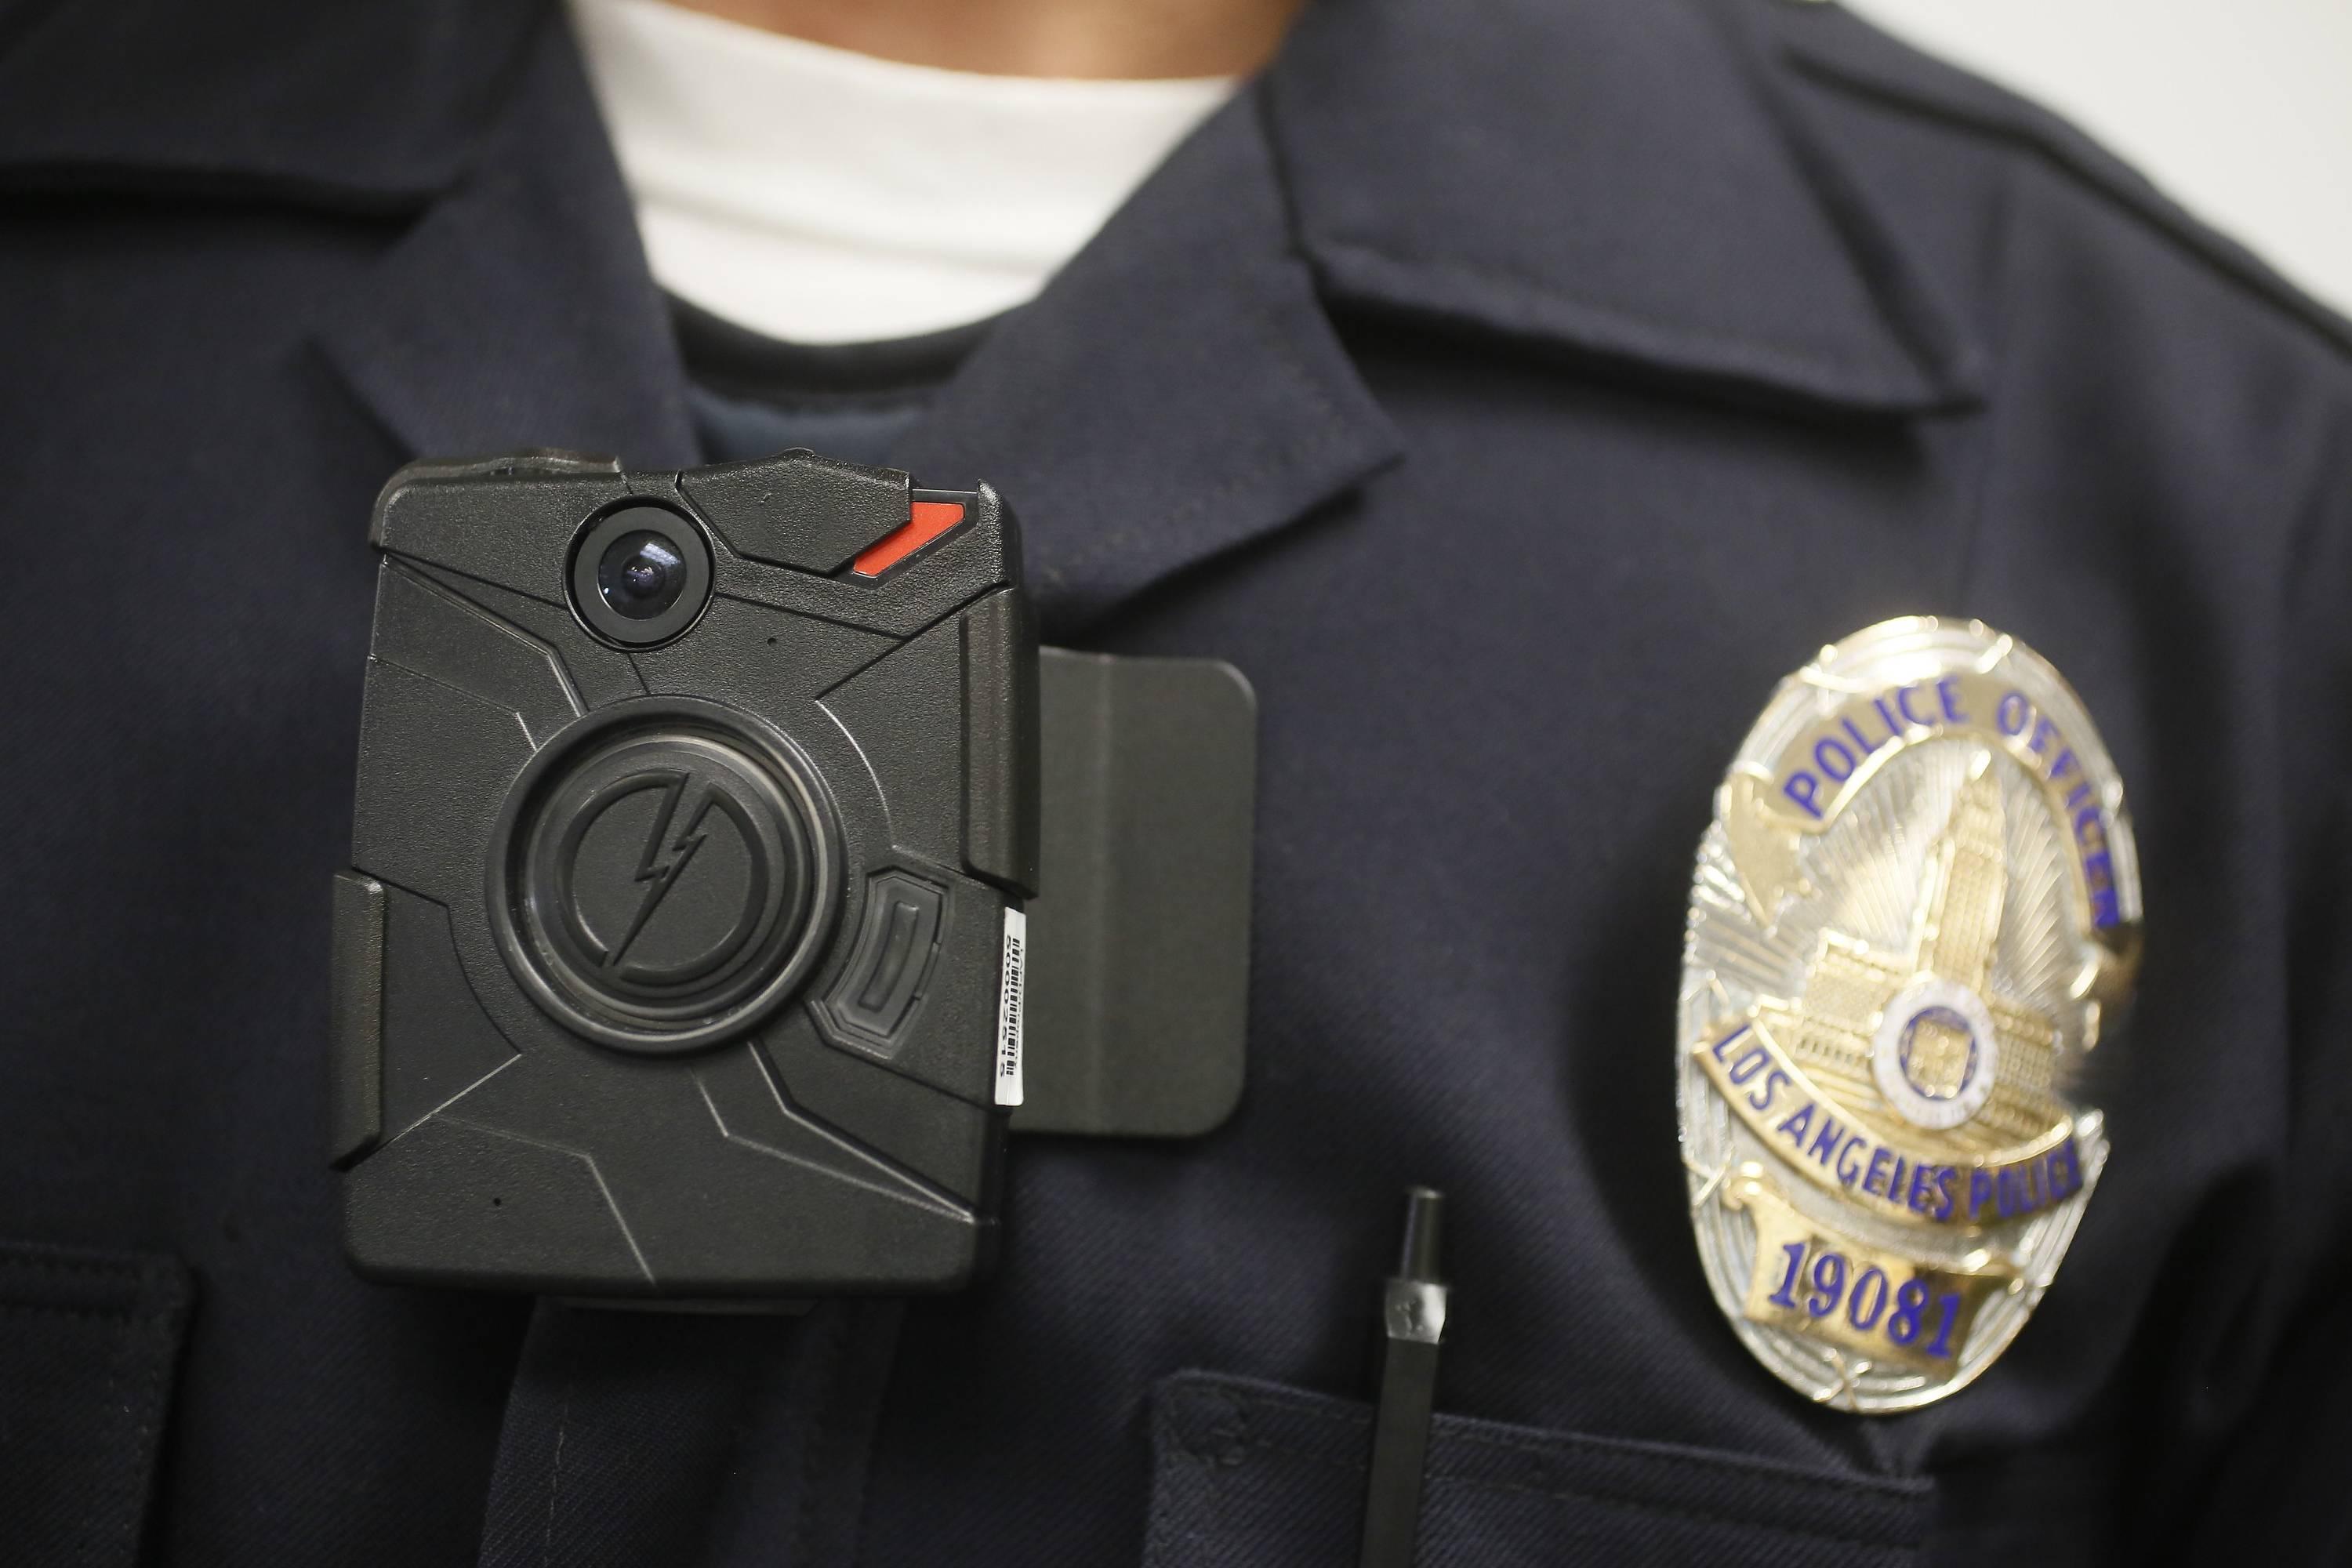 This Jan. 15, 2014 file photo shows a Los Angeles Police officer wearing an on-body cameras during a demonstration for media in Los Angeles. Thousands of police agencies have equipped officers with cameras to wear with their uniforms, but they've frequently lagged in setting policies on how they're used, potentially putting privacy at risk and increasing their liability. As officers in one of every six departments across the nation now patrols with tiny lenses on their chests, lapels or sunglasses, administrators and civil liberties experts are trying to envision and address troublesome scenarios that could unfold in front of a live camera.